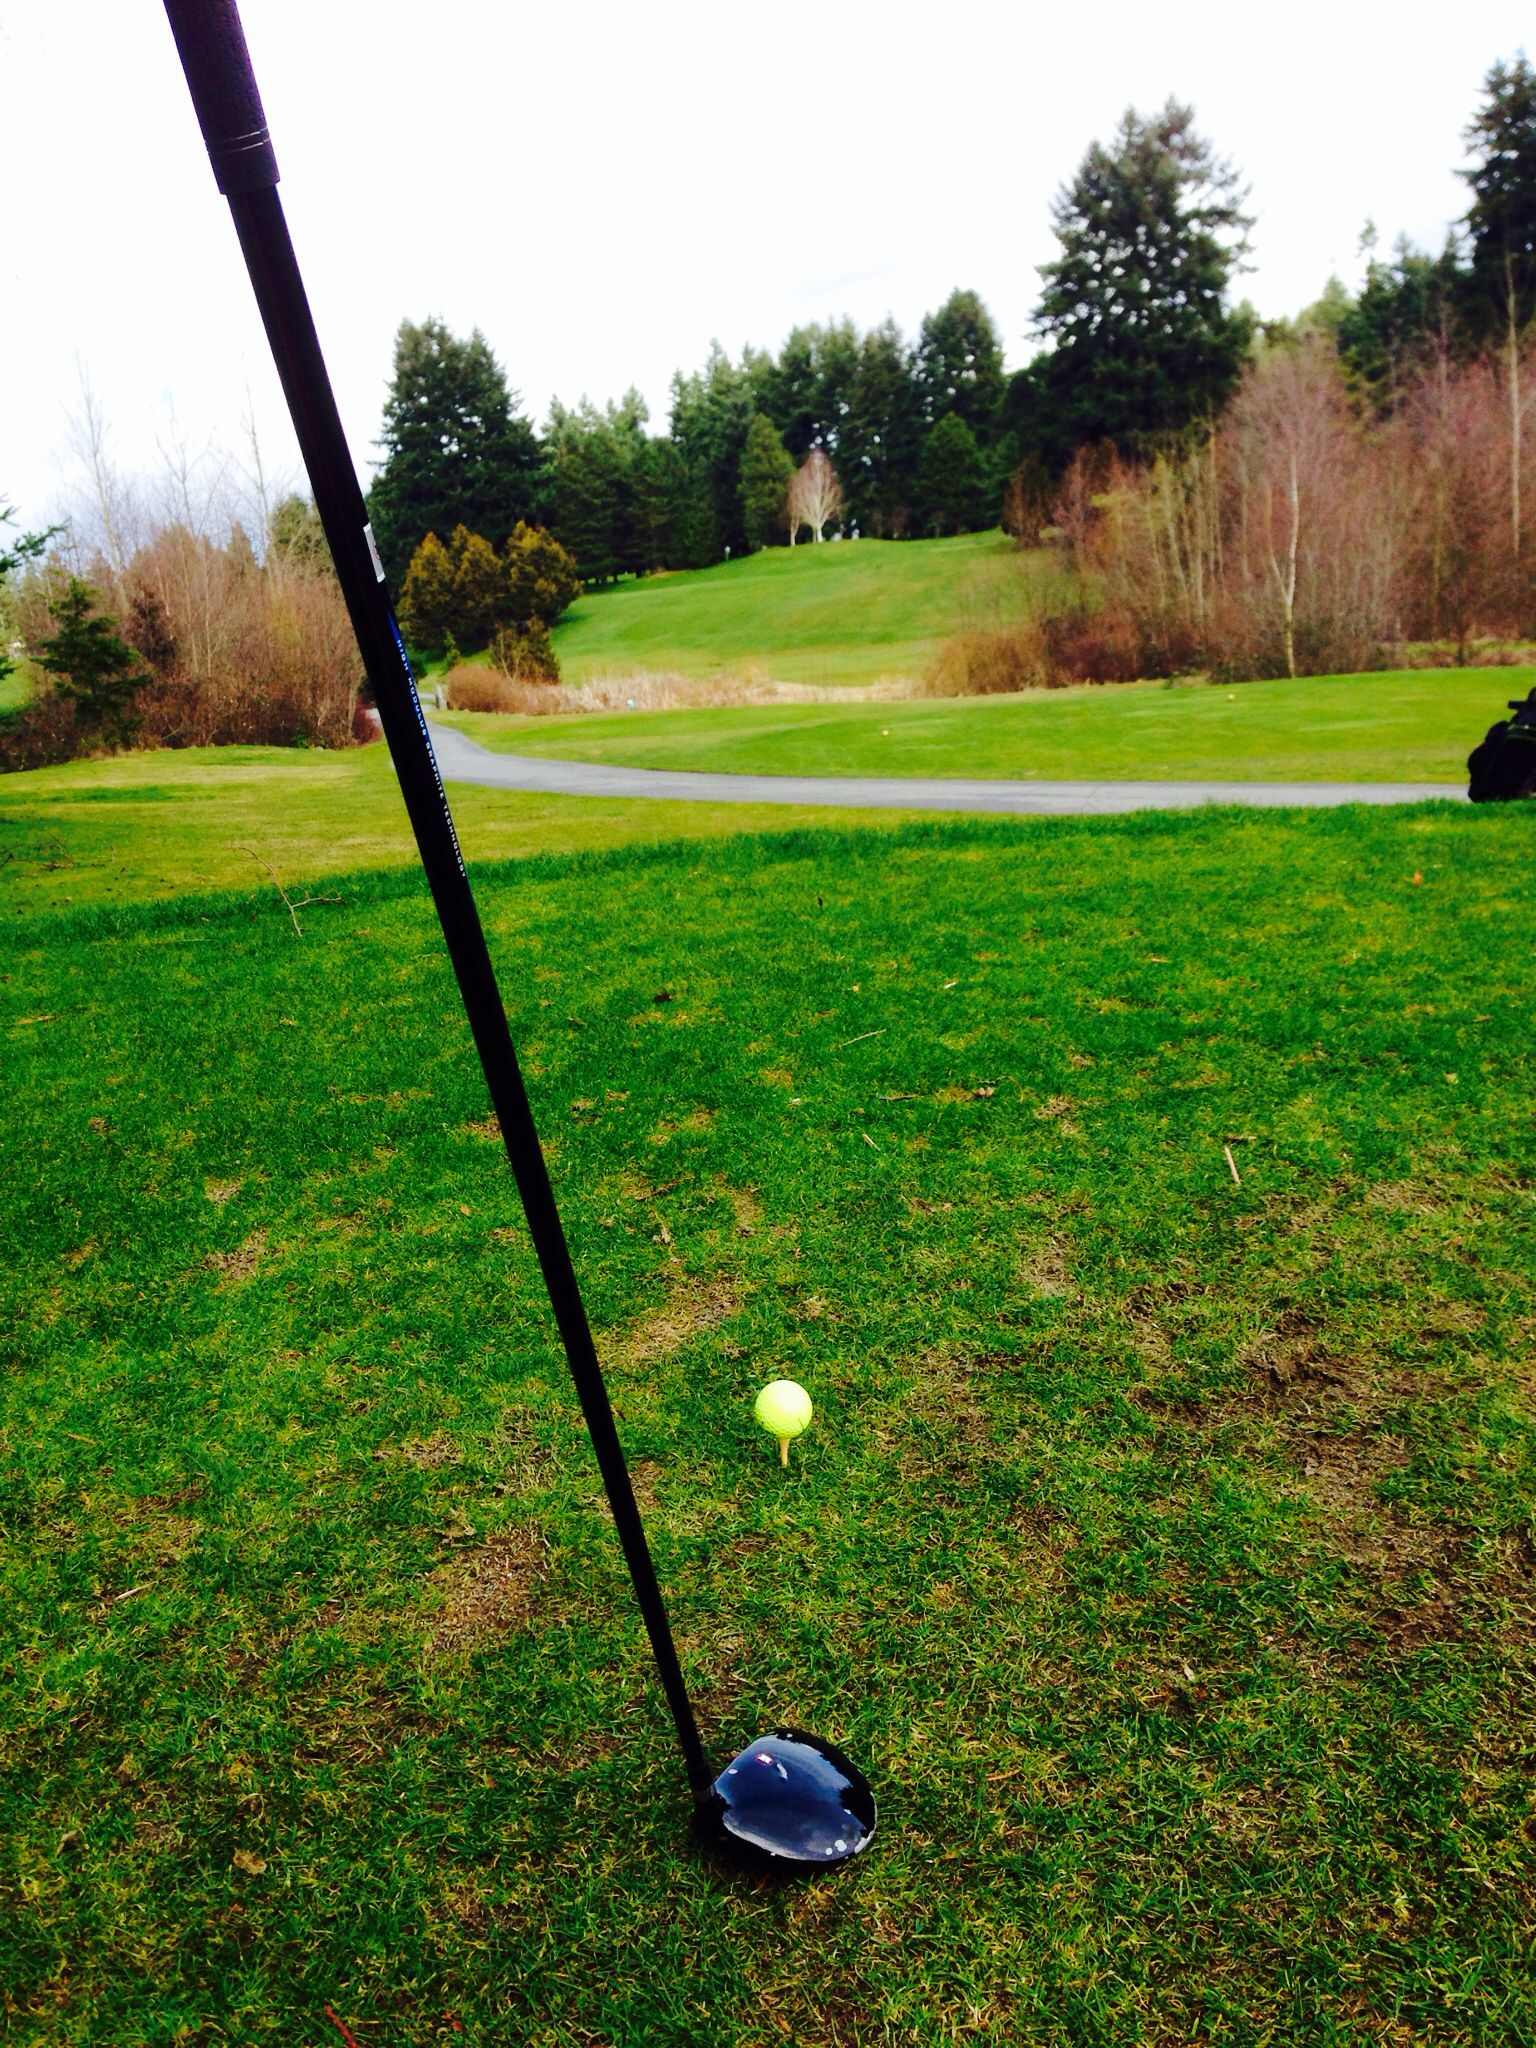 Teeing off w/5 wood!